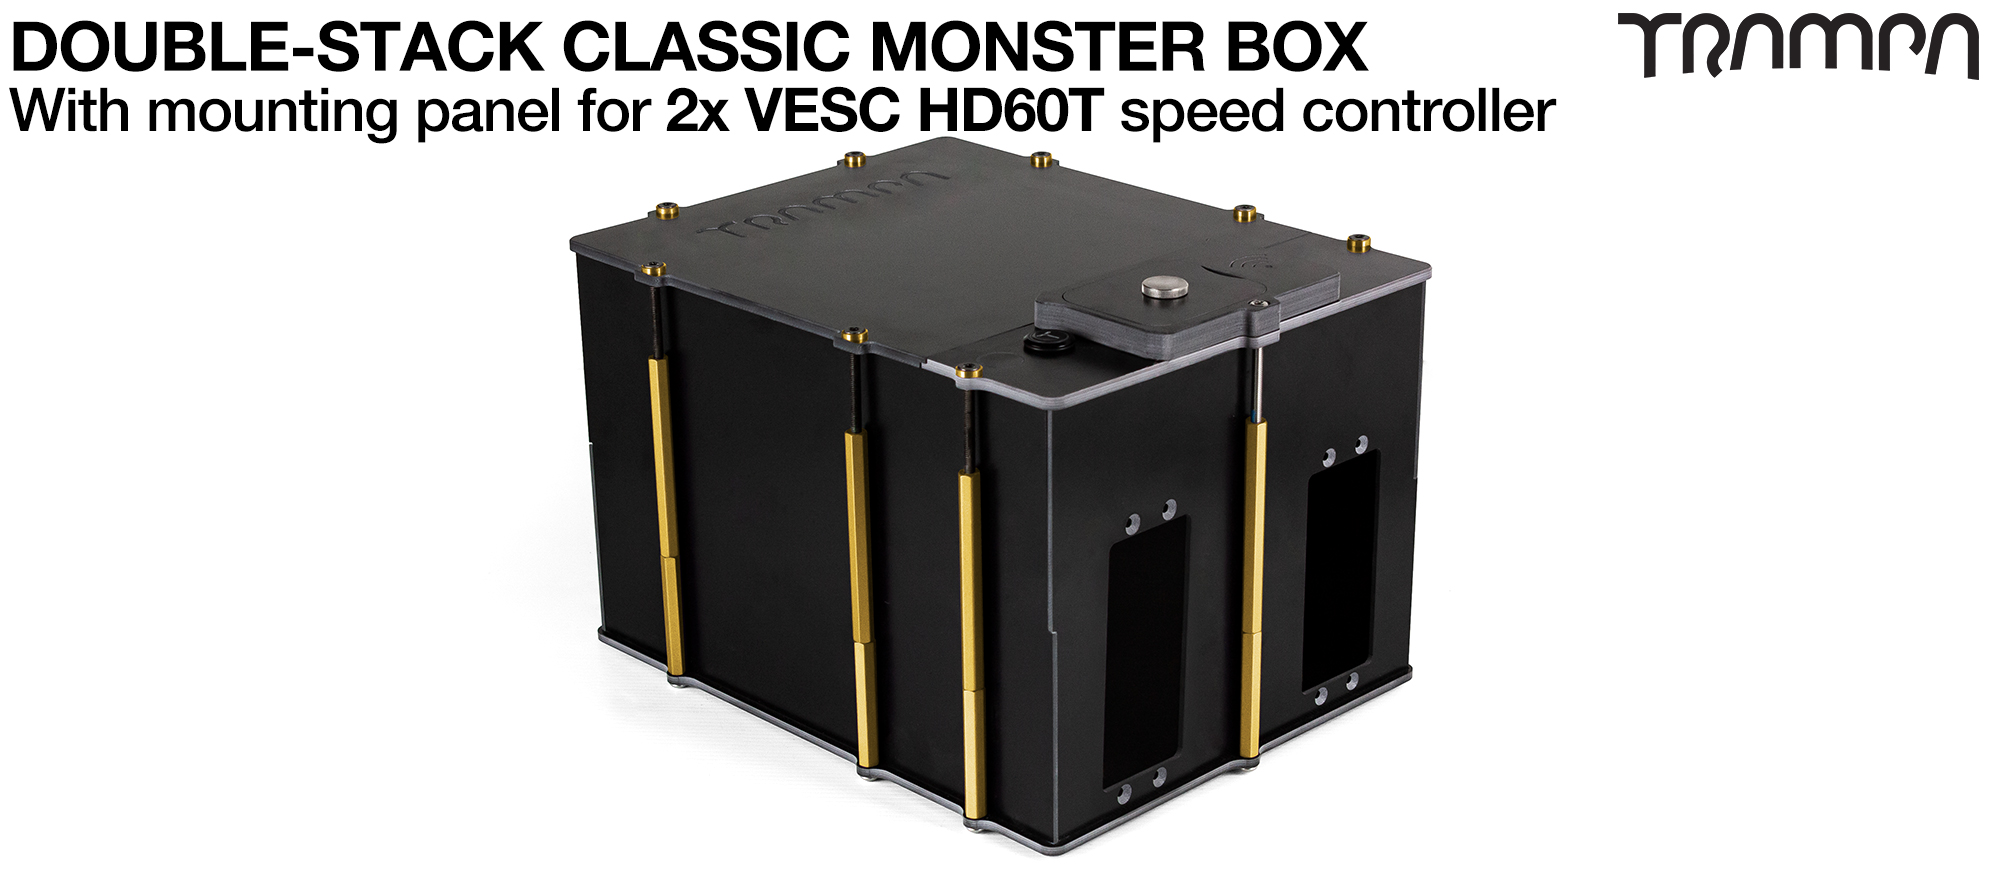 Classic MONSTER Box MkV DOUBLE STACKER fits 168x 18650 cells to give 42Ah Range or 4x 22000Ah Li-Po cells to give 44Ah Range & has Panels to fit 2x VESC HD-60T internally for 4WD